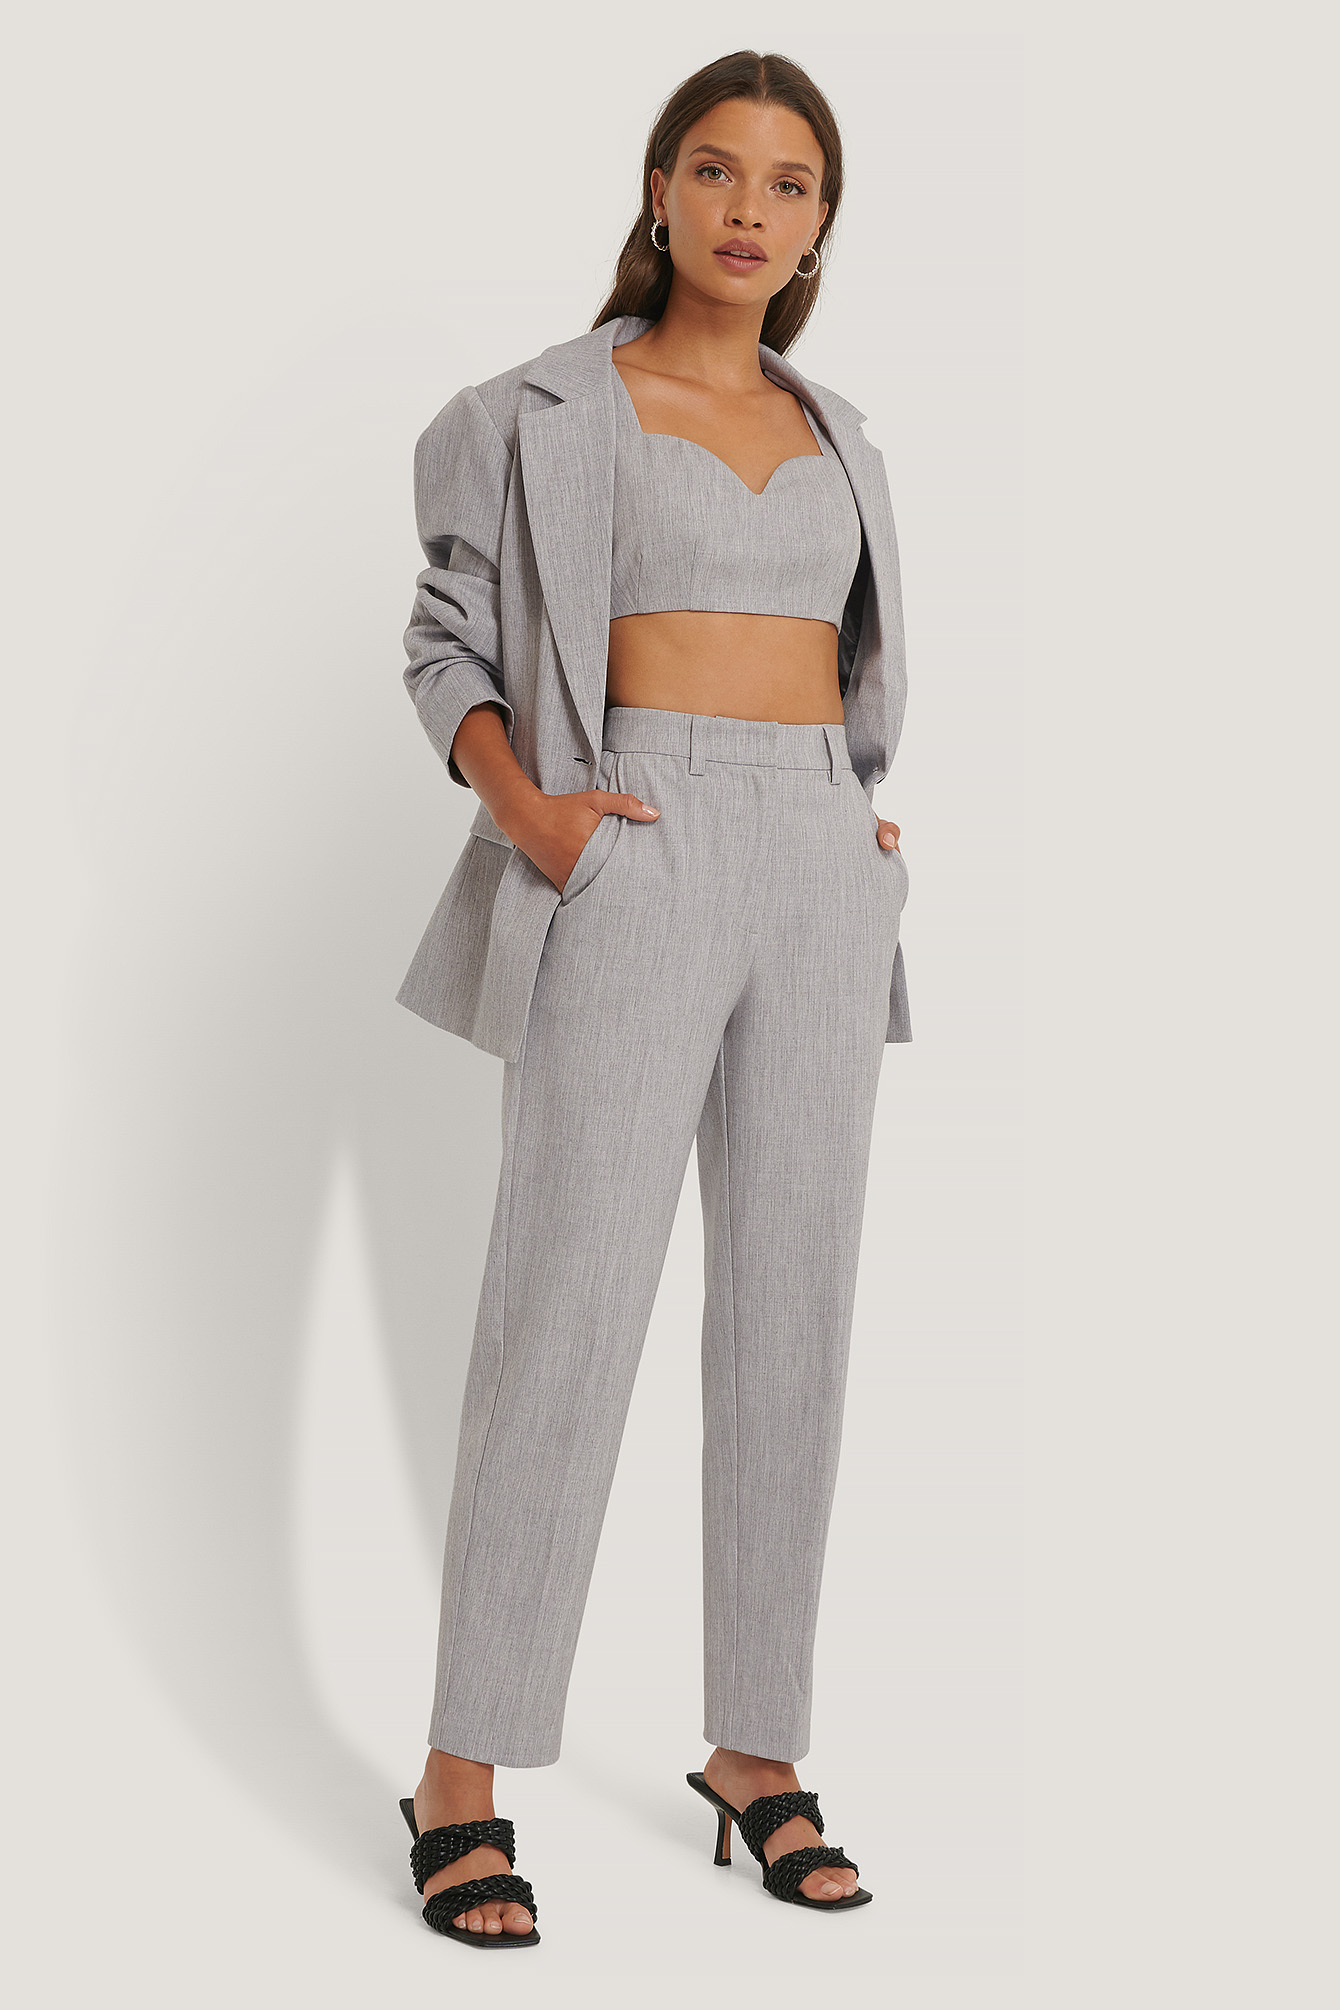 Light Grey Pantalon De Costume